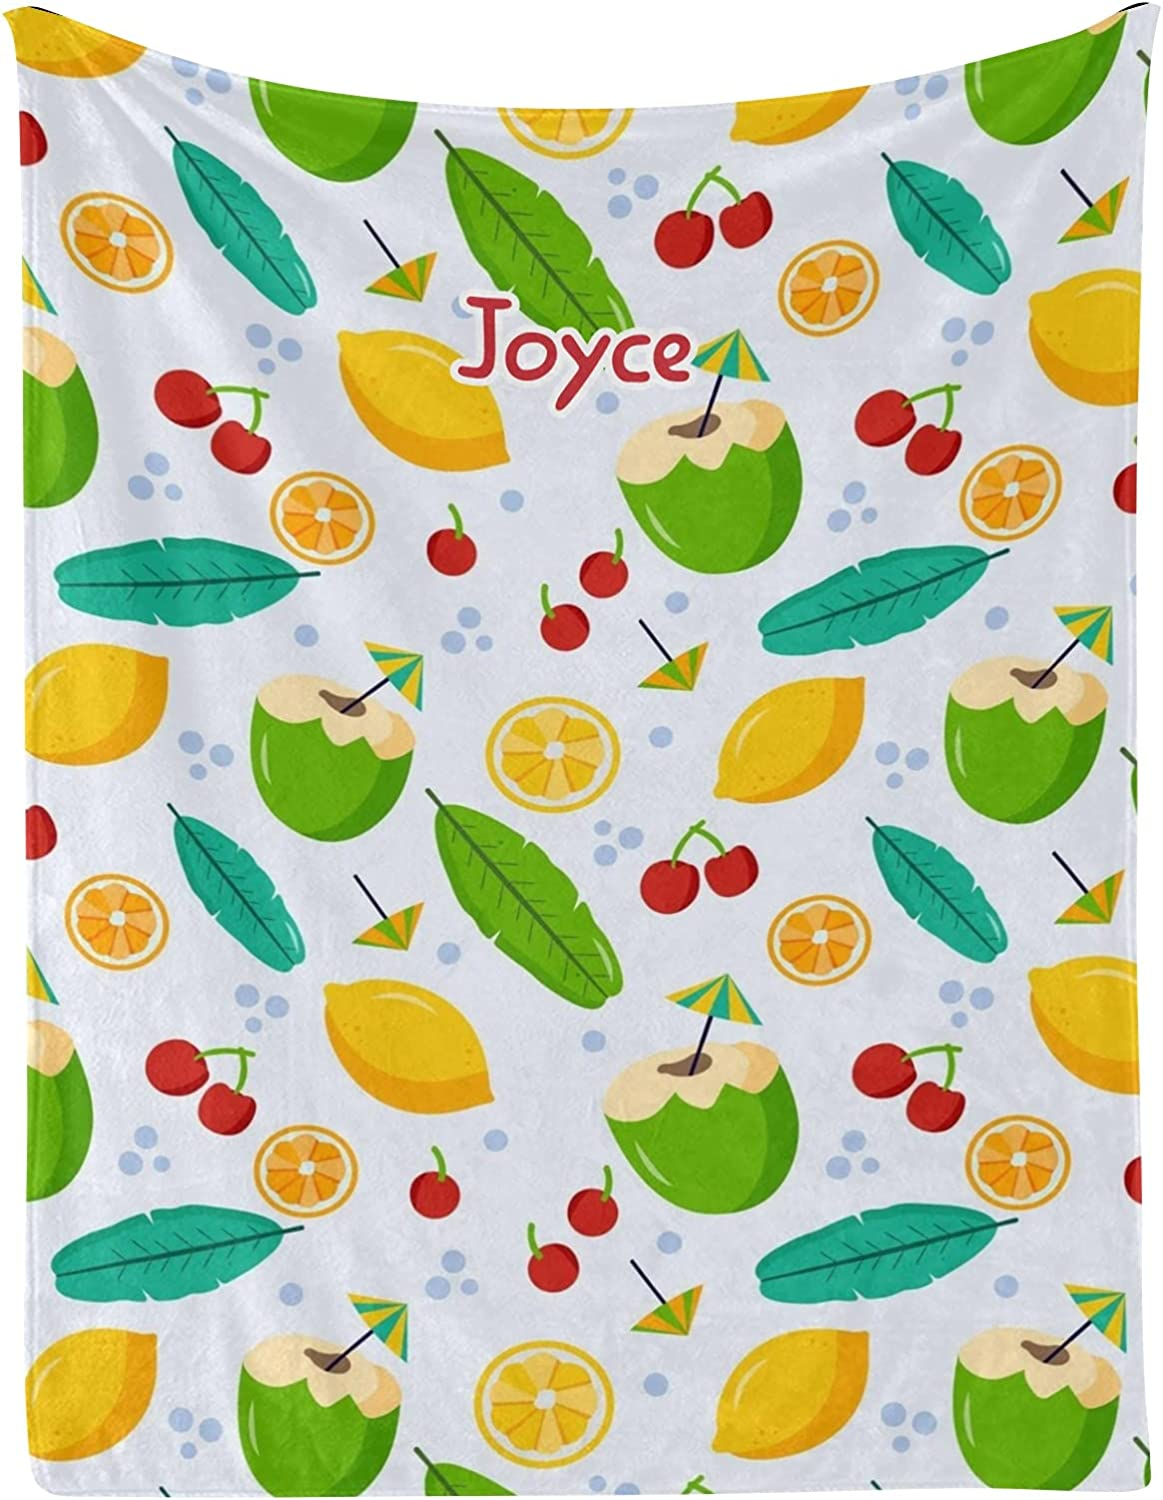 Leaf Cherry Fixed price for sale Lemon Coconut Personalized Blankets 3 with Name Animer and price revision Baby